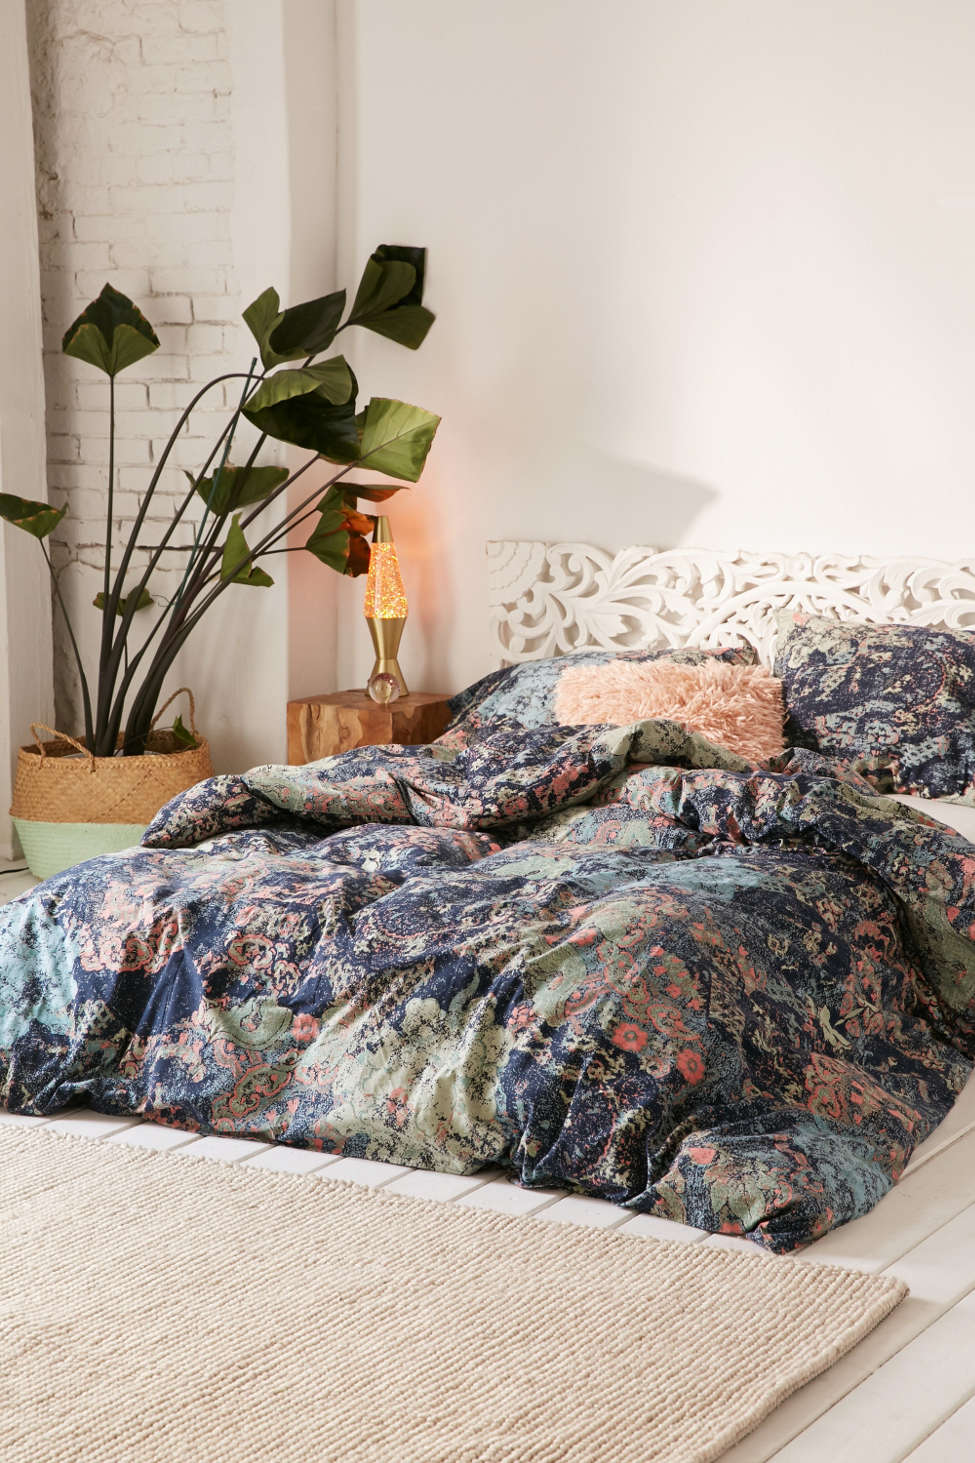 Slide View: 1: Sato Worn Duvet Cover